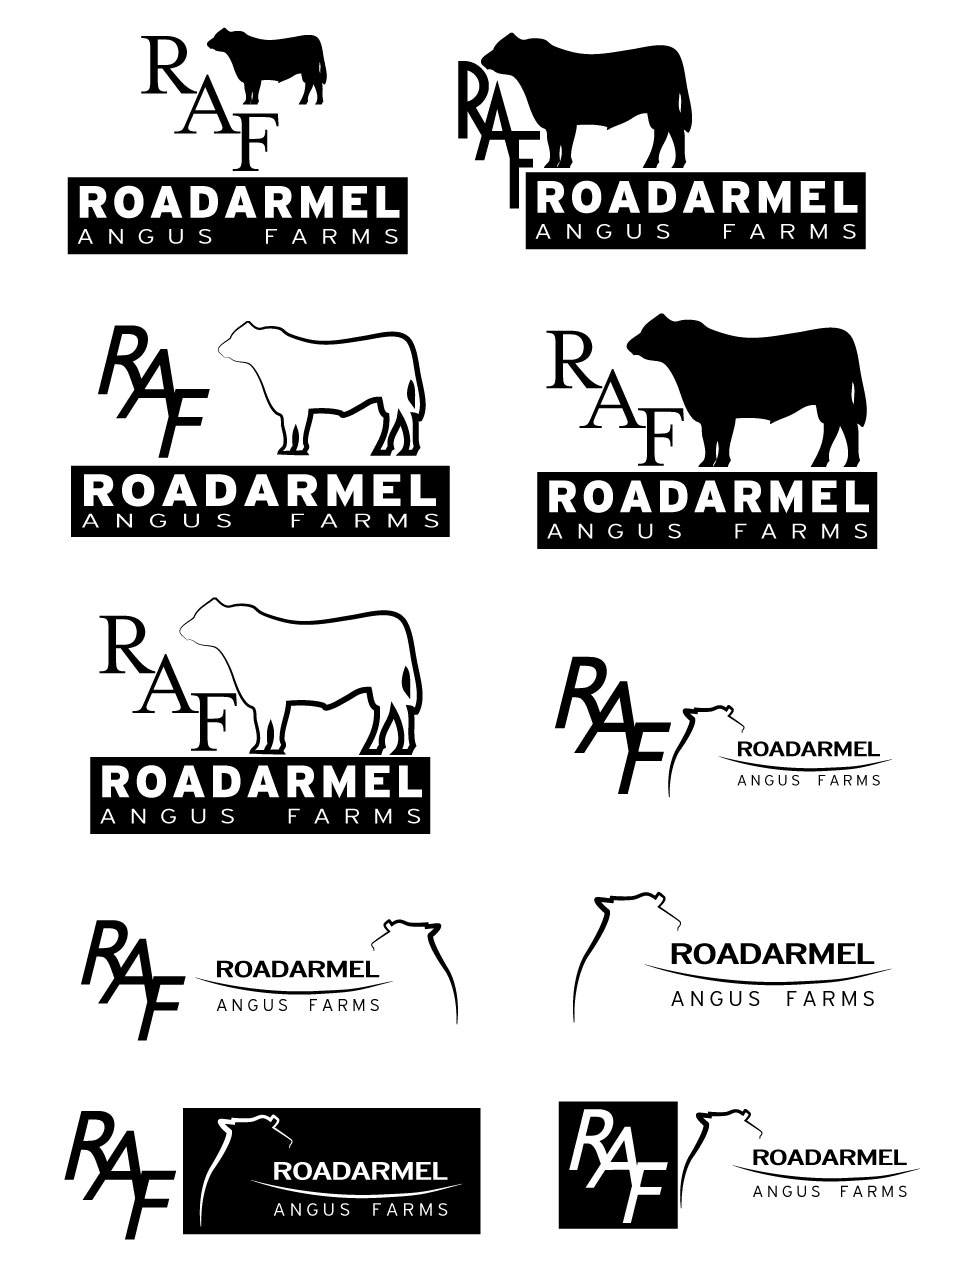 roadarmel-angus-farm.jpg